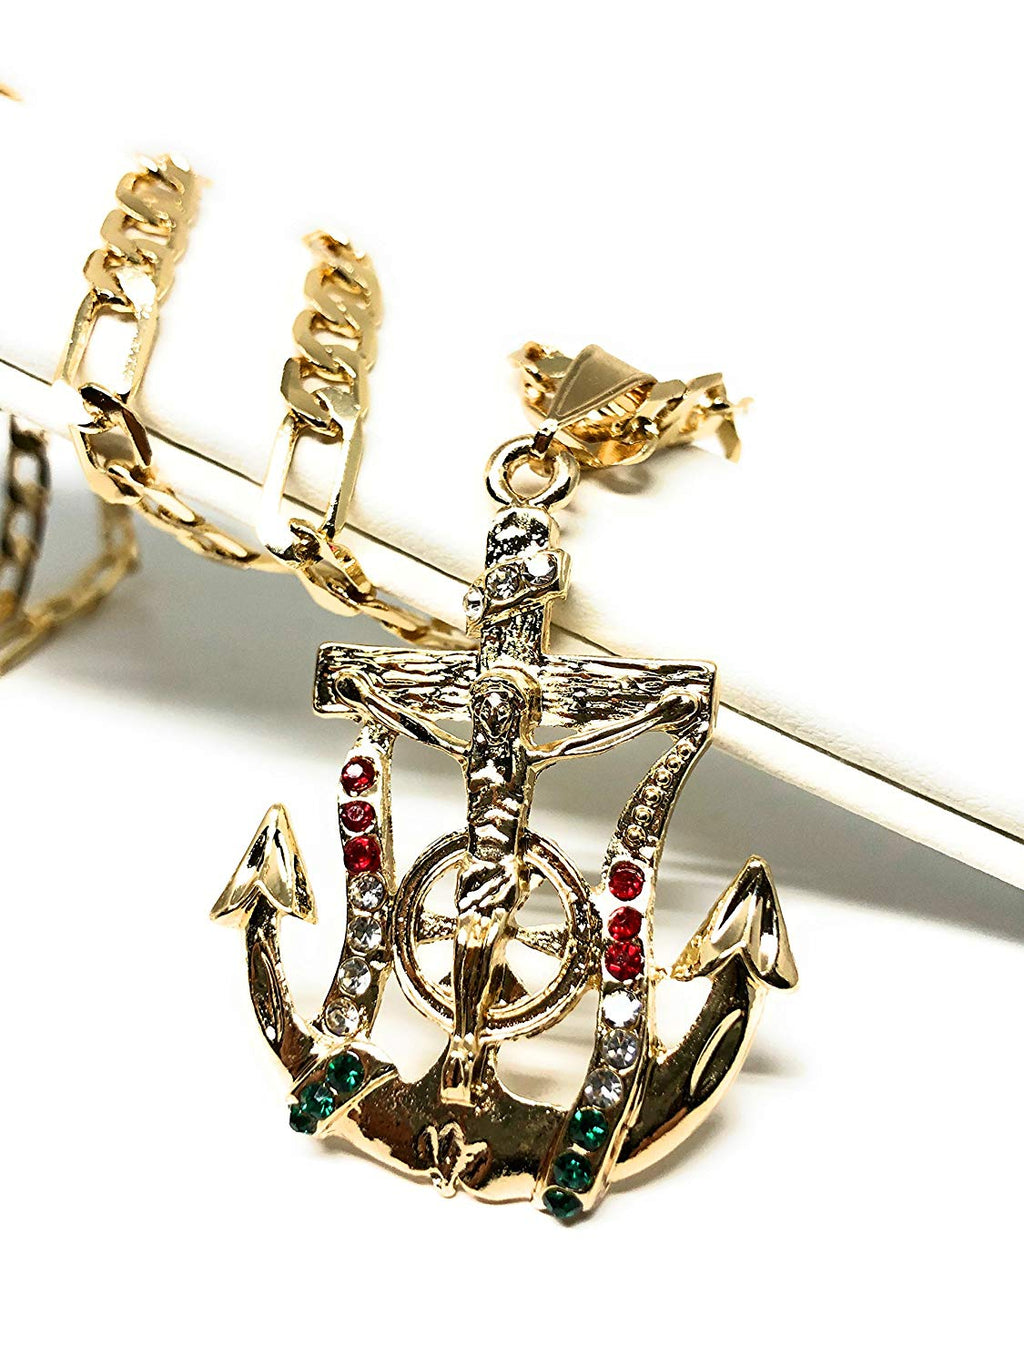 "Gold Plated Jesus Crucifix Anchor Pendant Necklace Figaro 26"" Jesus Crucifijo Ancla Medalla - Fran & Co. Jewelry"